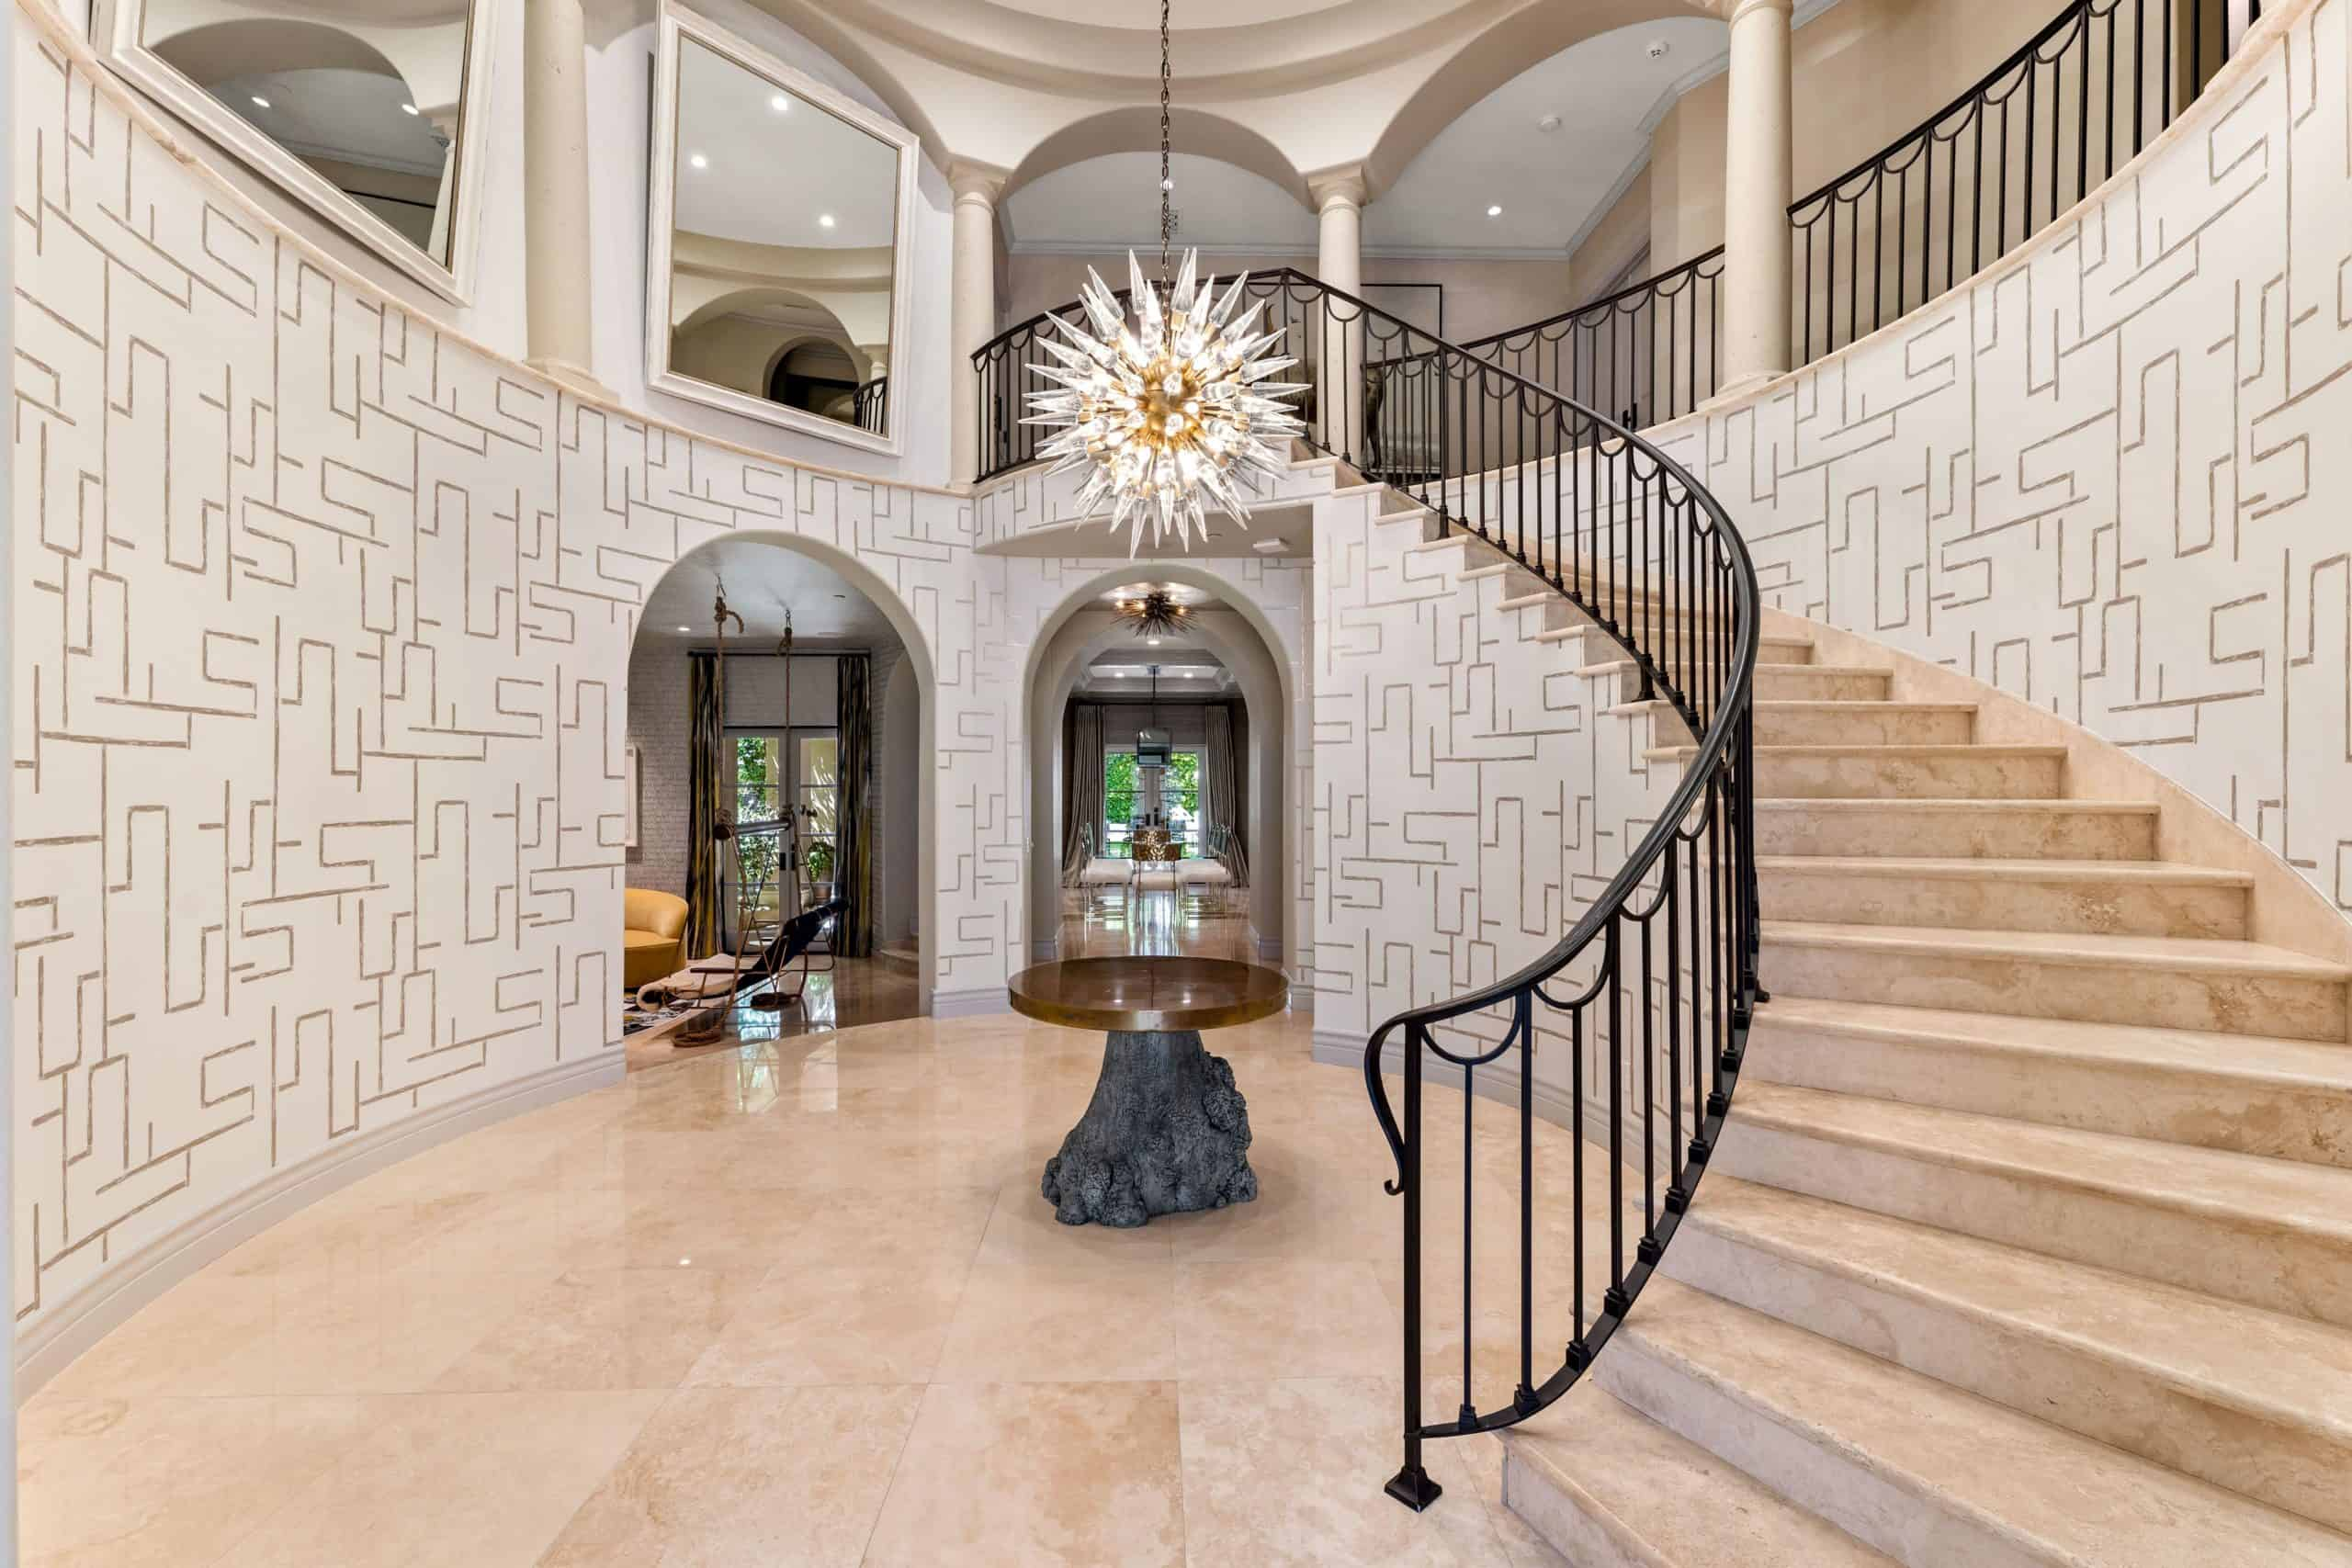 A grand foyer boasting elegant walls, beige tiles floors and a two-storey ceiling. The area has a charming centerpiece table with a stunning chandelier set just above it and a curved staircase.